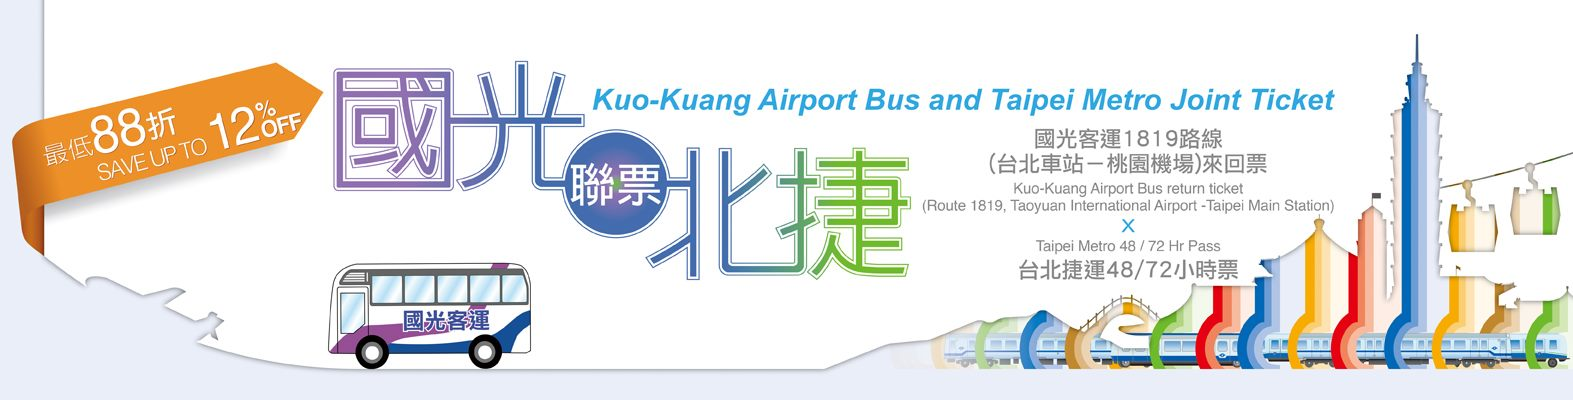 Kuo-Kuang Airport Bus and Taipei Metro Joint Ticket[Open in new window]